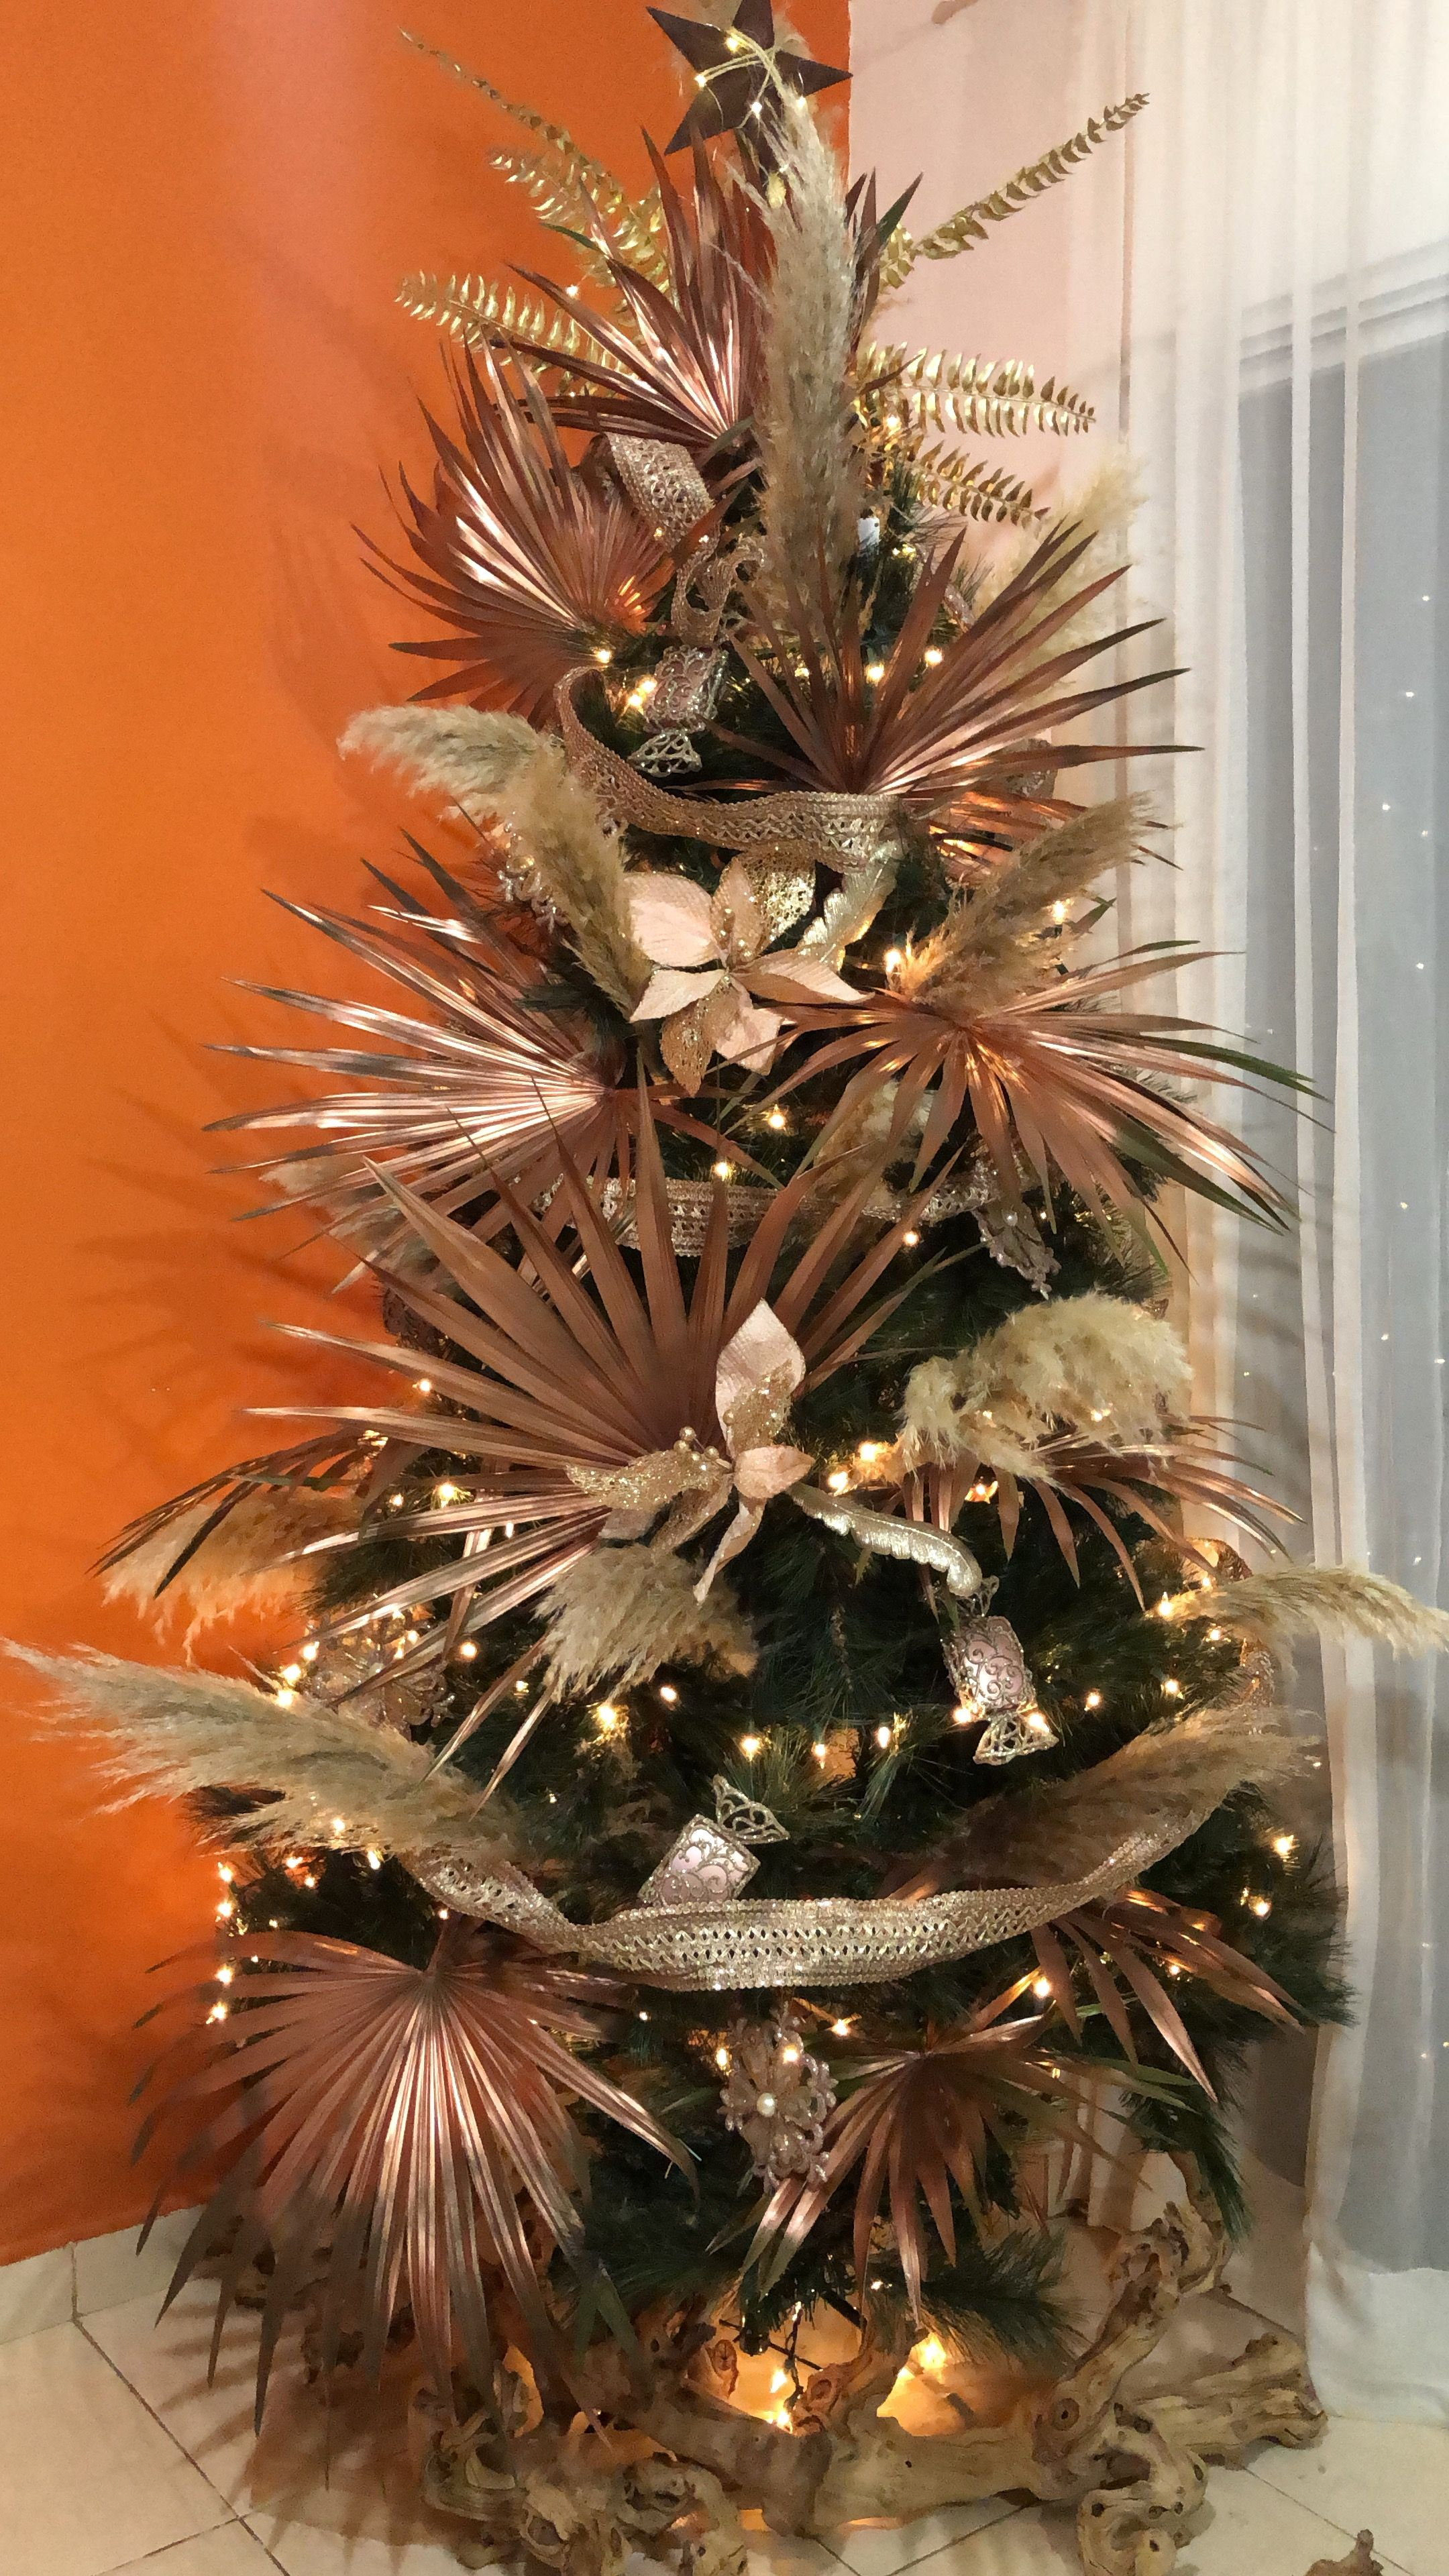 Pampas Grass And Palm Leaves Rose Gold Christmas Tree Design By Me For Our Beach Tropical Christmas Decorations Tropical Christmas Trees Christmas Palm Tree